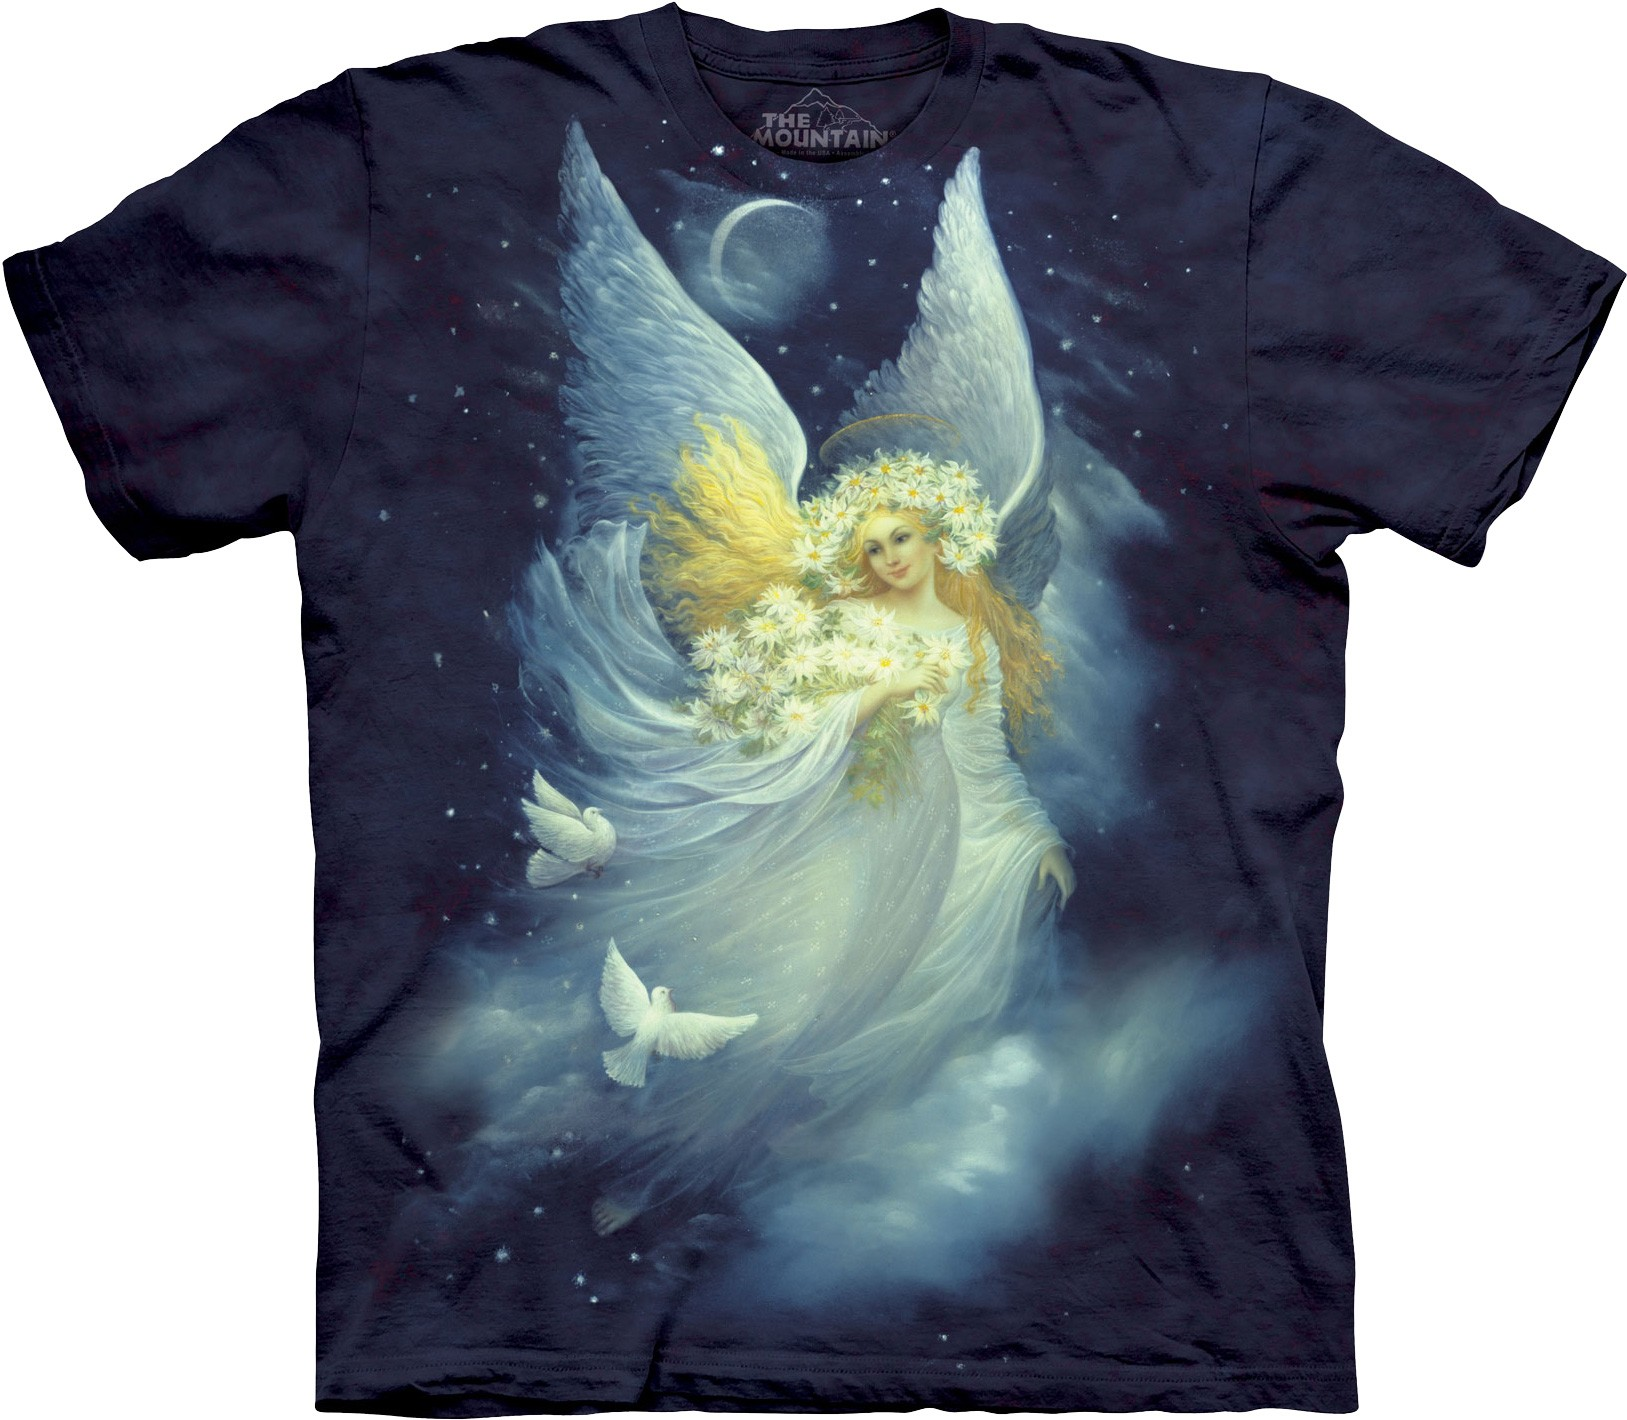 Camiseta - The Mountain - Angel Of Night